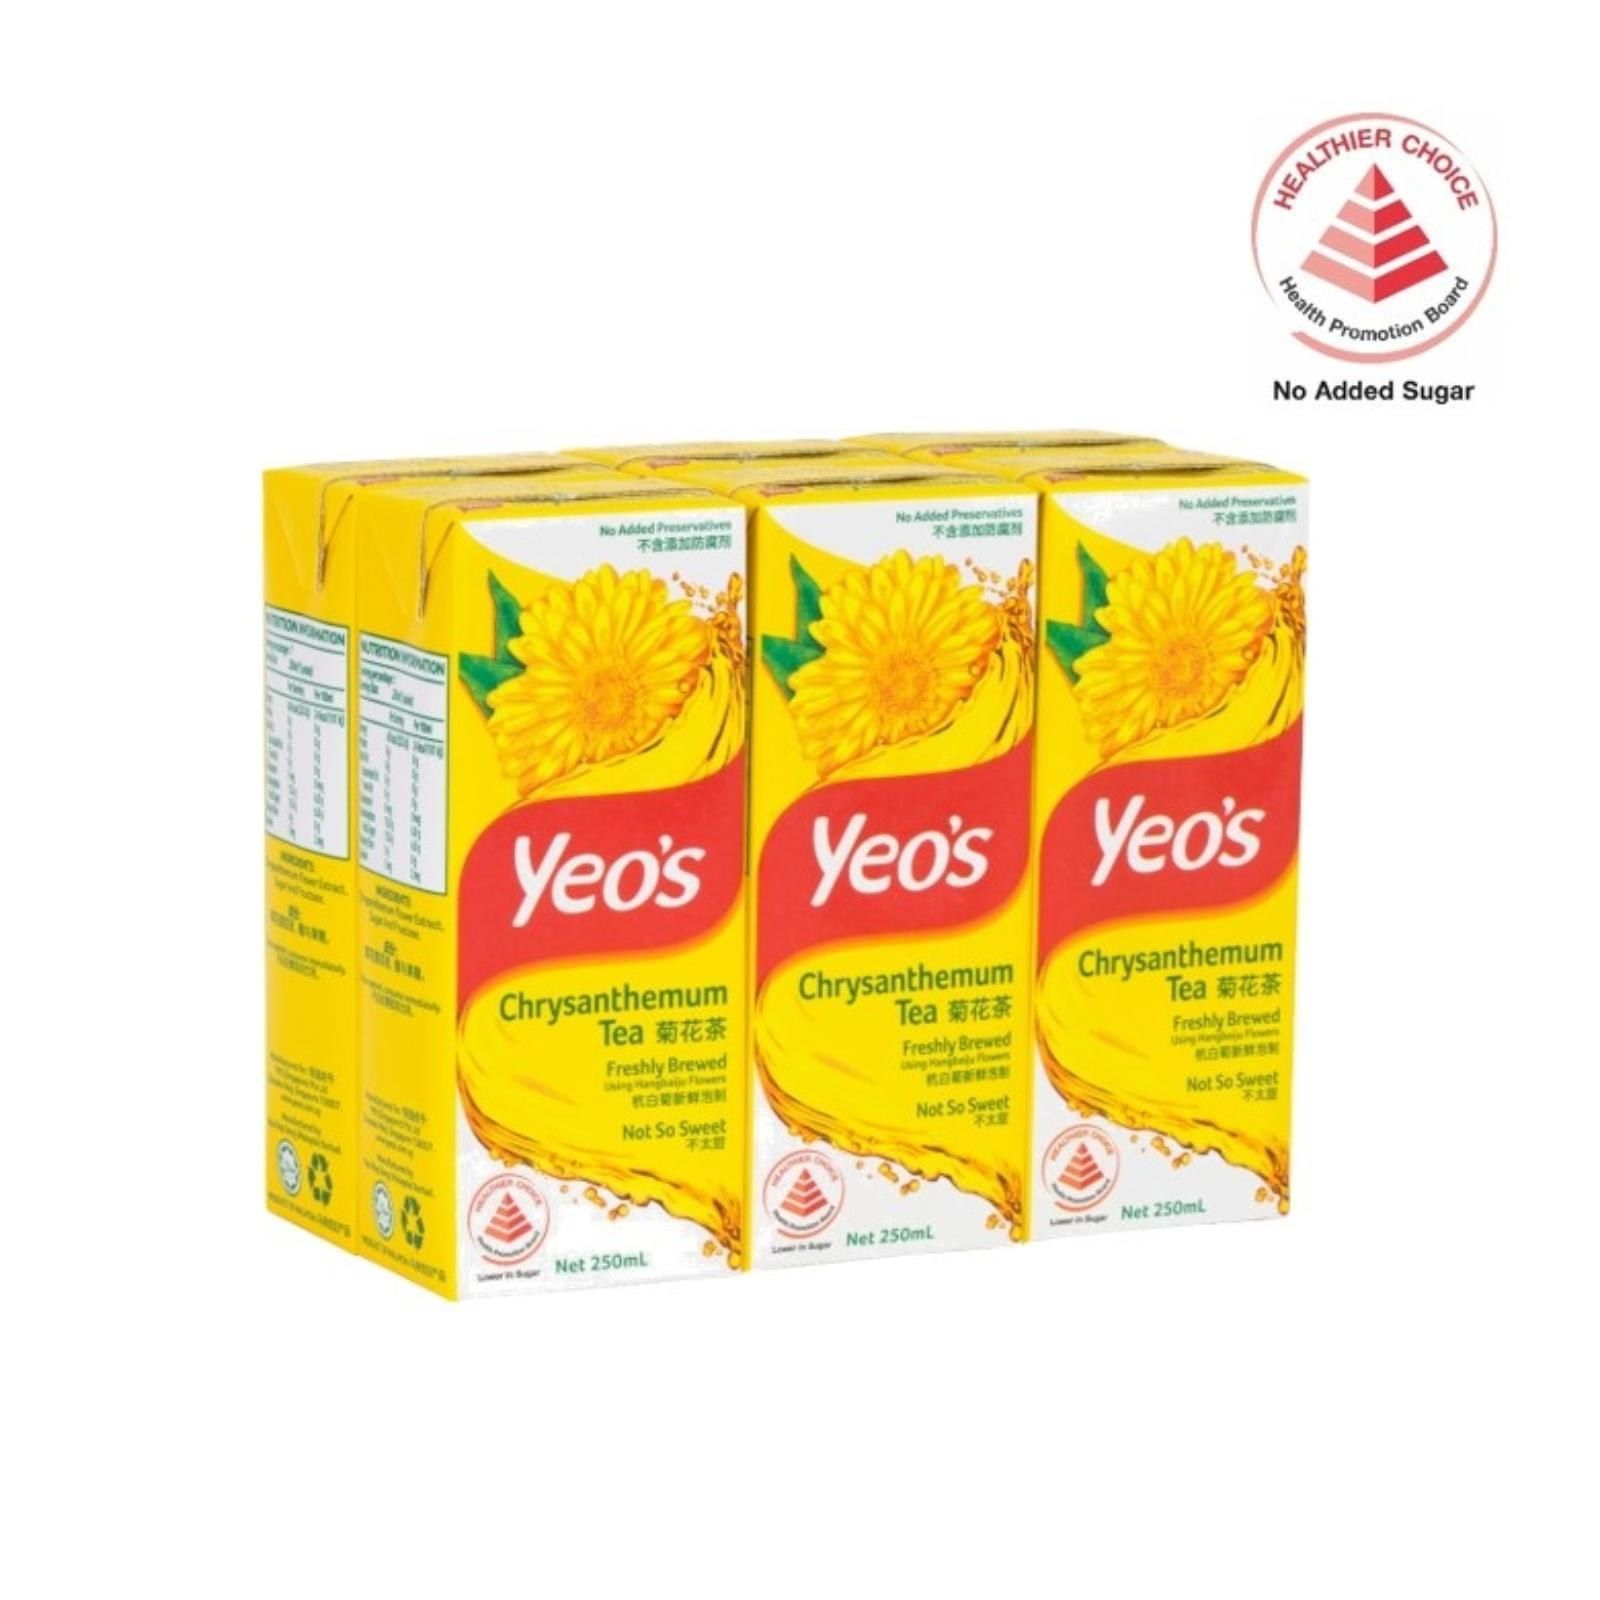 Yeo's Packet Drink - Chrysanthemum Tea (Not So Sweet)